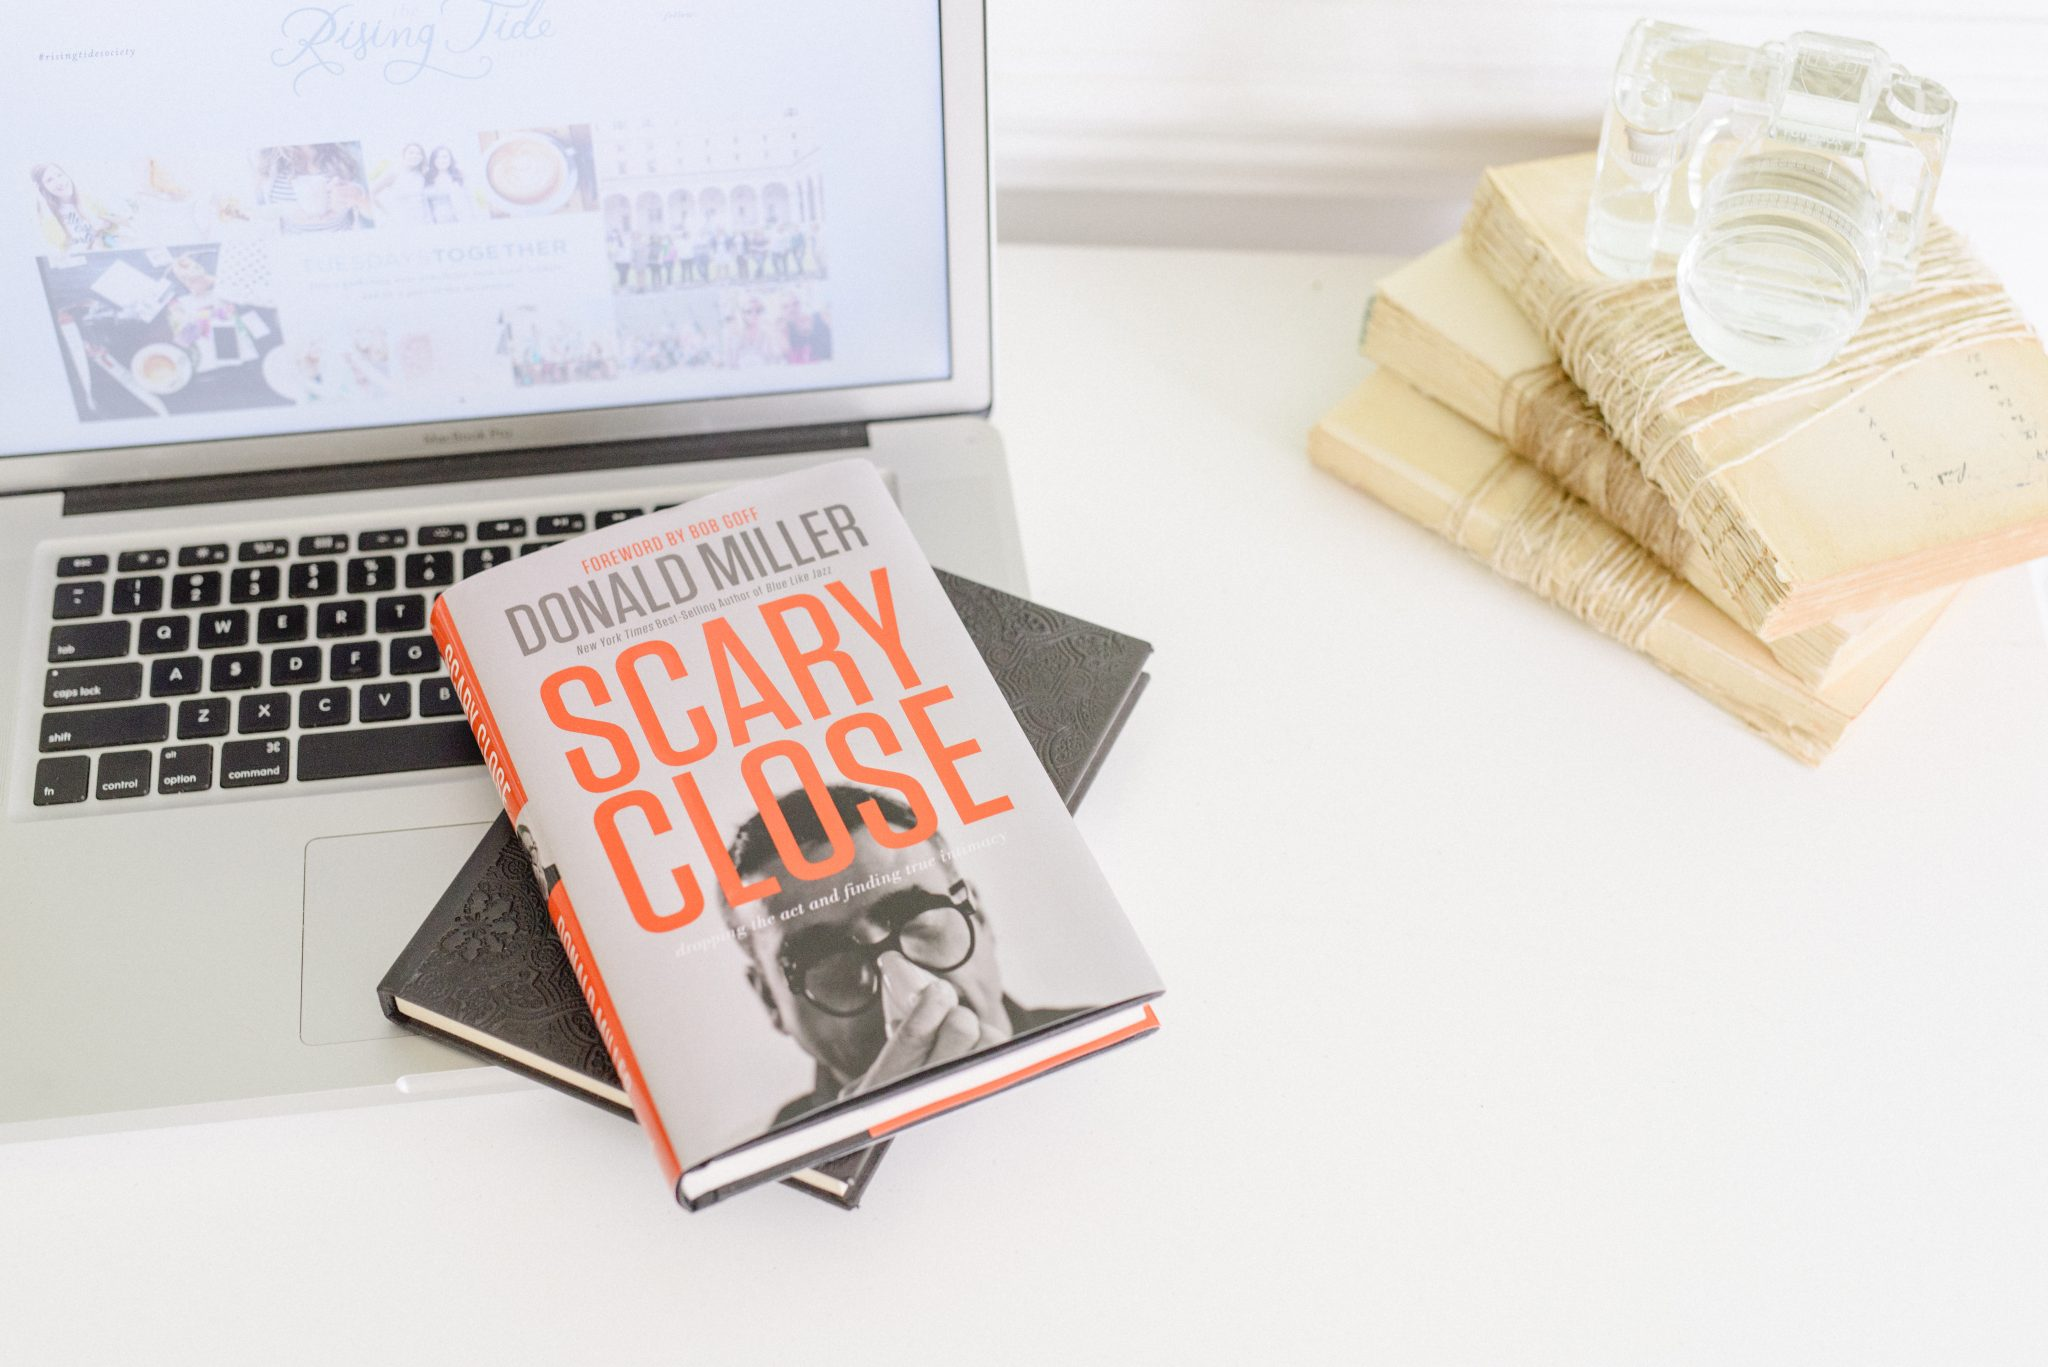 scary-close-book-review-3